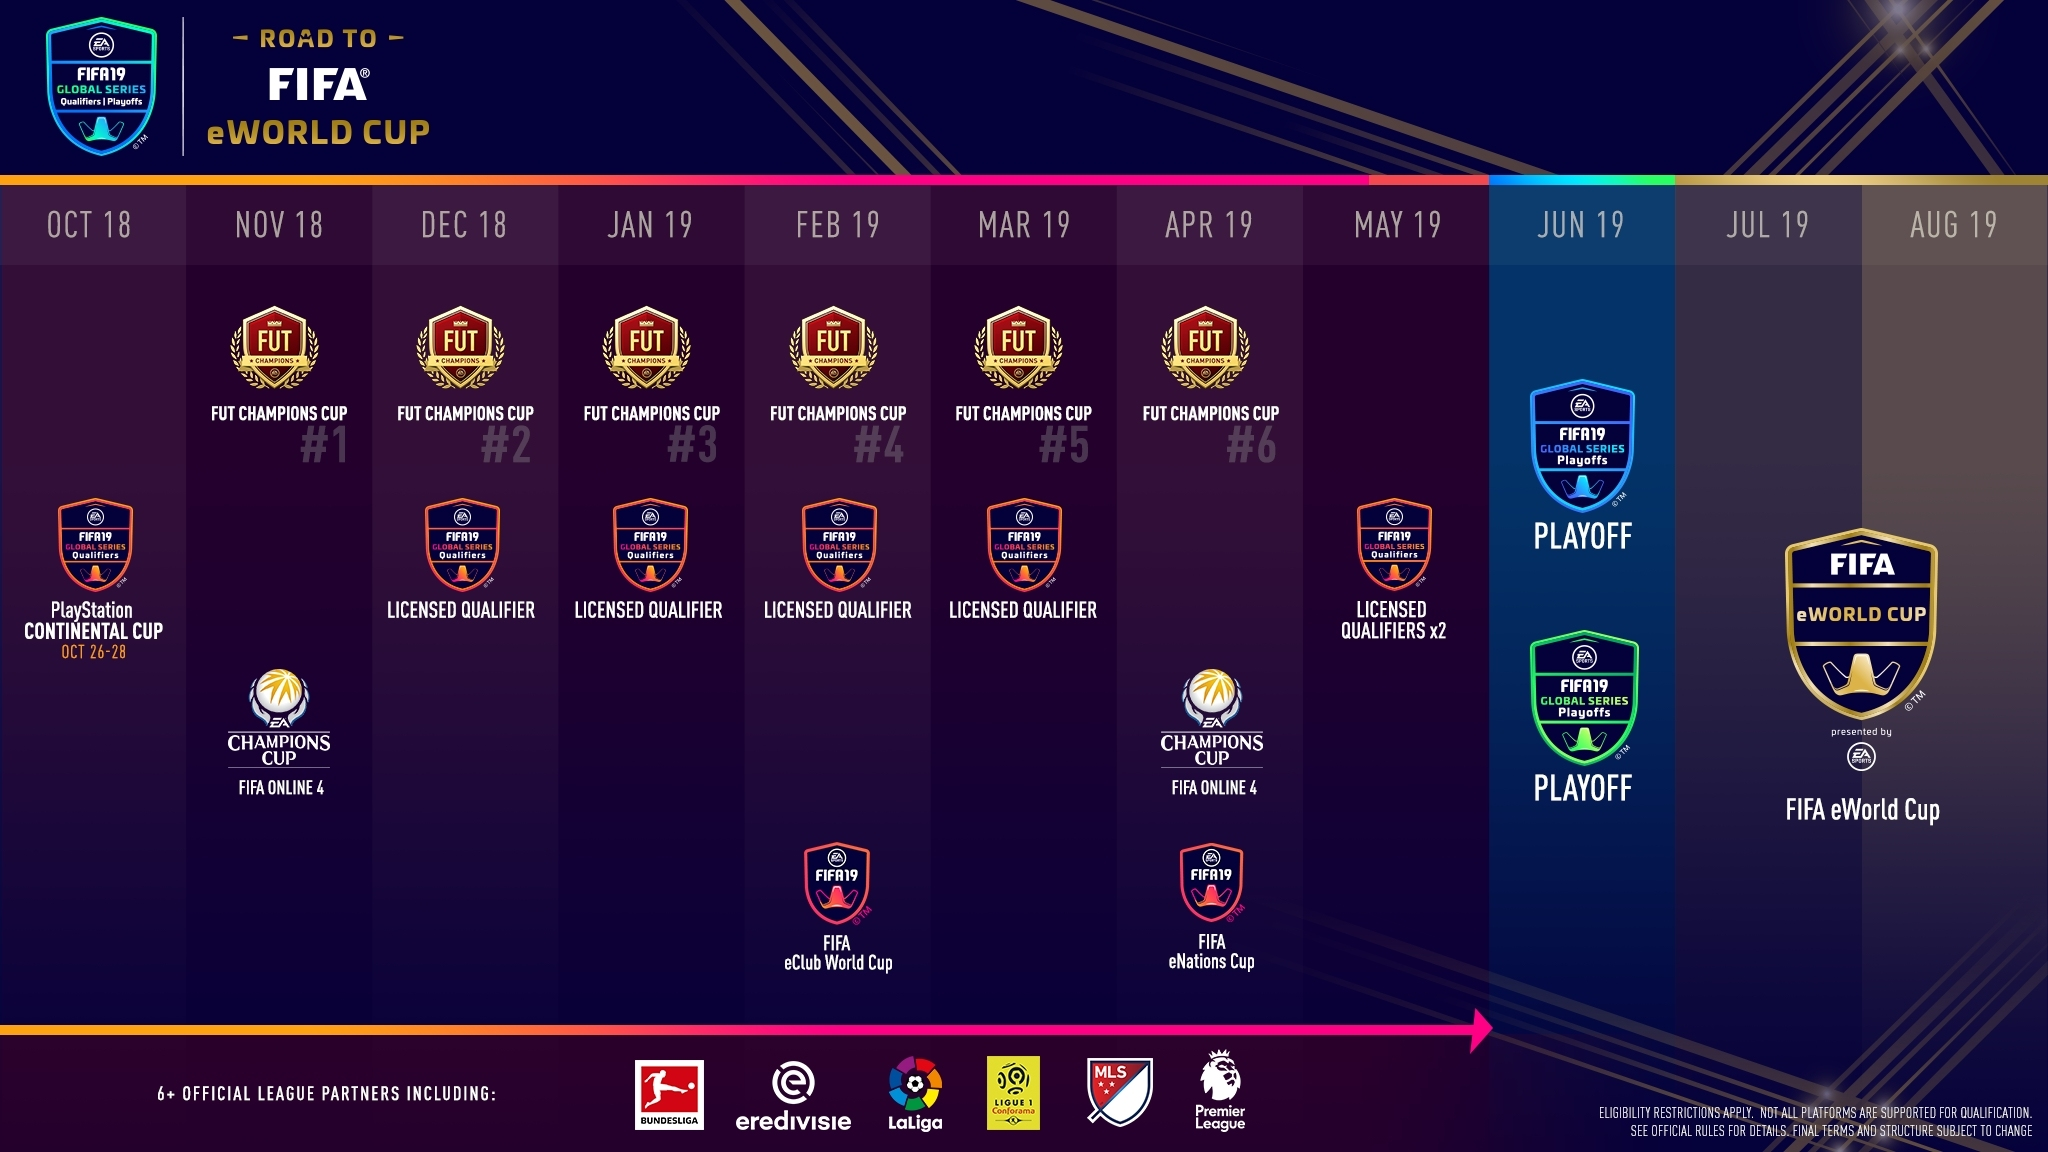 International Champions Cup 2020 Calendrier.Fifa 19 Esports Tournament Calendar Road To The Fifa Eworld